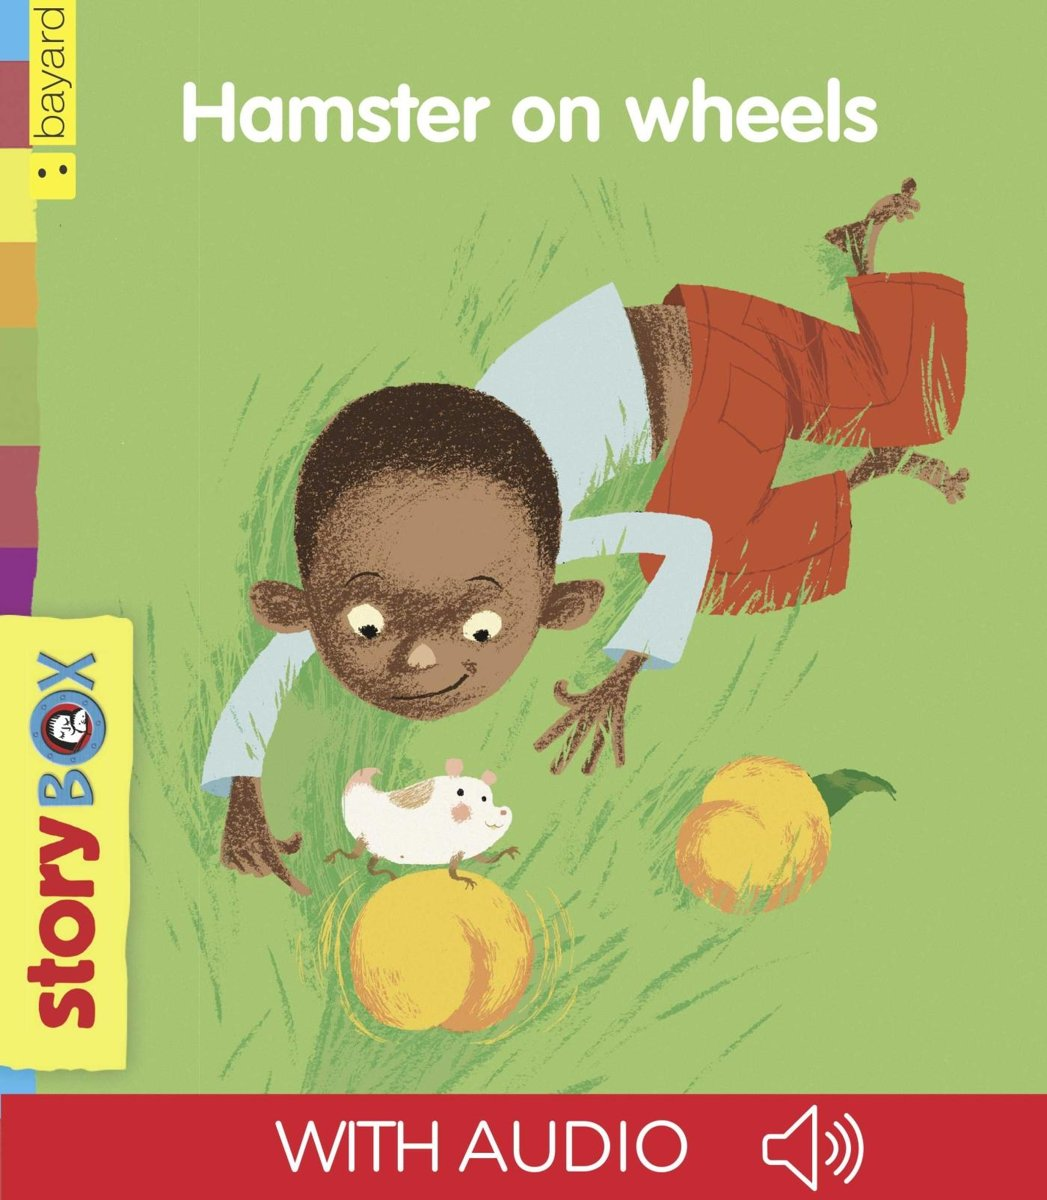 Hamster on wheels